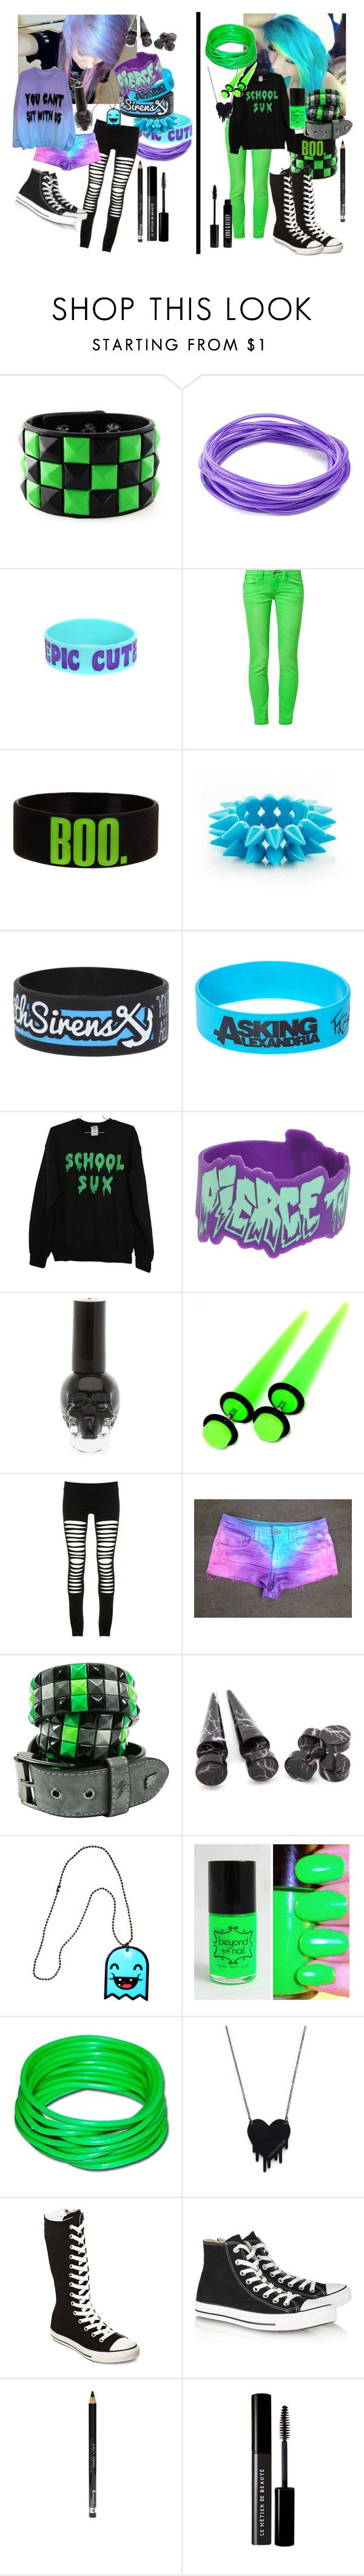 """""""best friends <3"""" by xxxxsourxxxx ❤ liked on Polyvore featuring One Green Elephant, Maurie & Eve, Alex and Chloe, Converse, Rimmel, Le Métier de Beauté and Lord & Berry"""